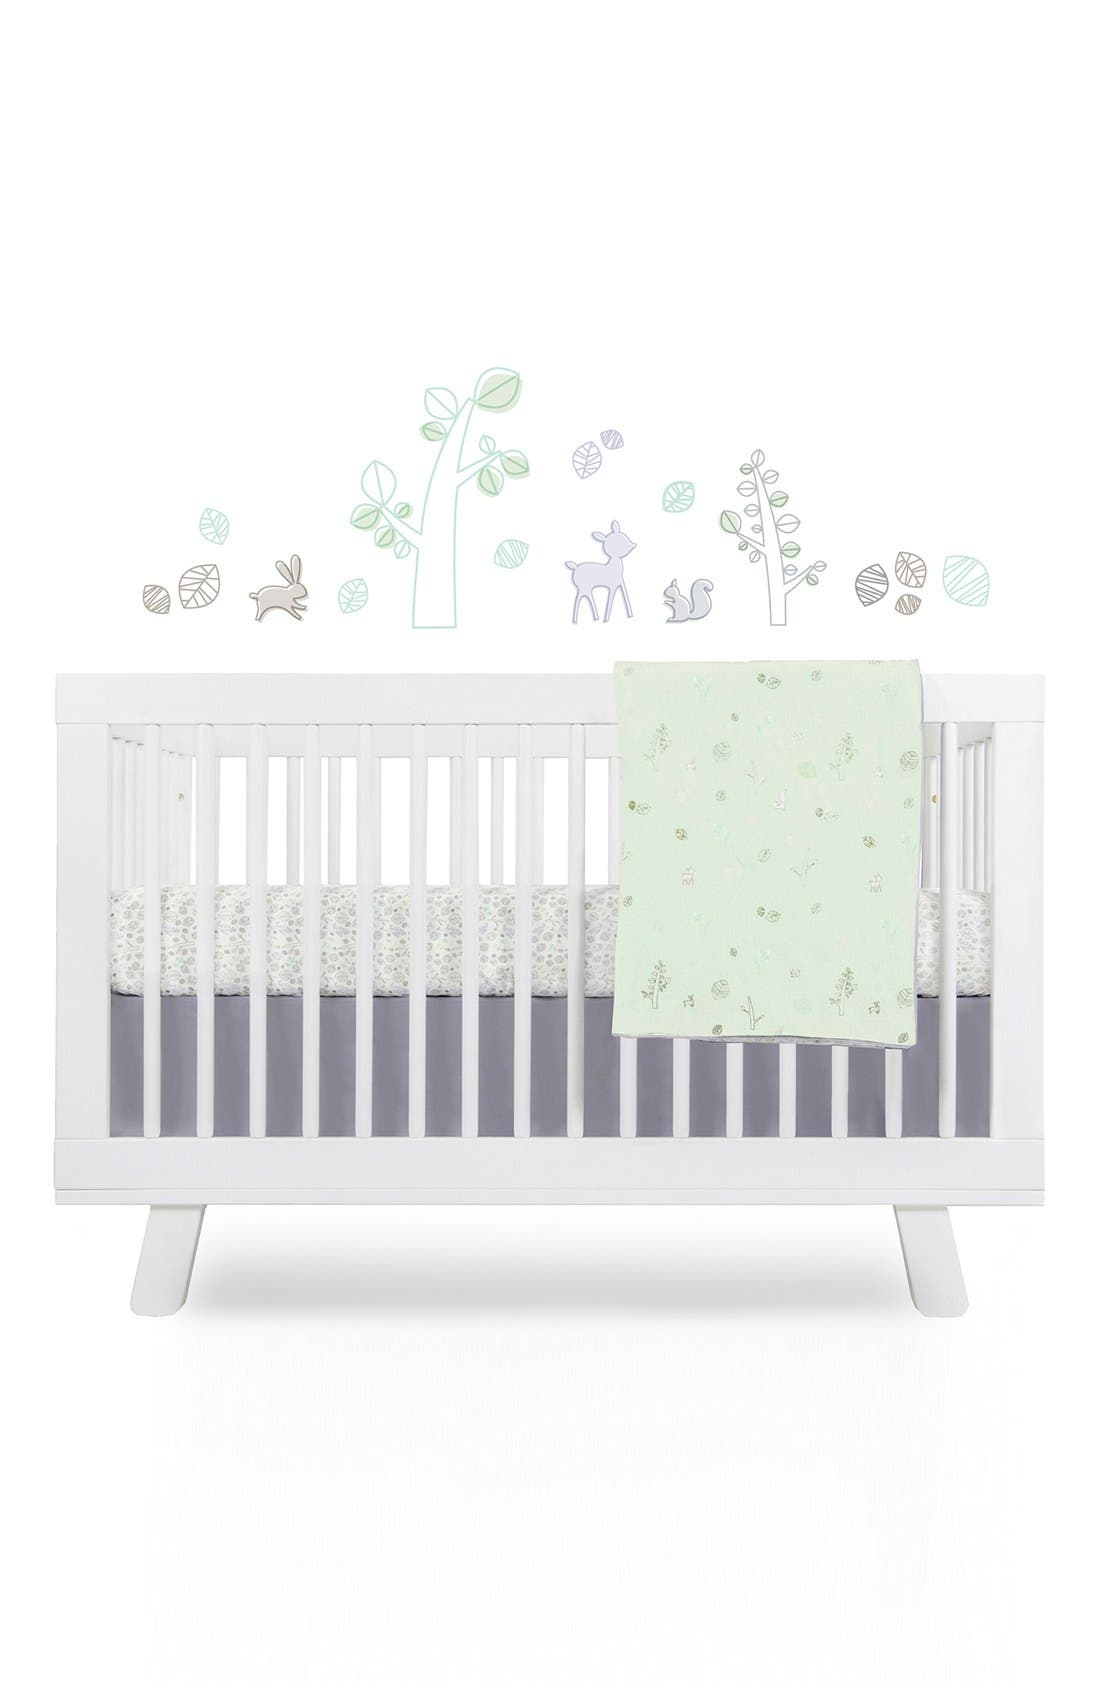 'Woods' Crib Sheet, Crib Skirt, Contour Changing Pad, Play Blanket & Wall Decals,                         Main,                         color, Green